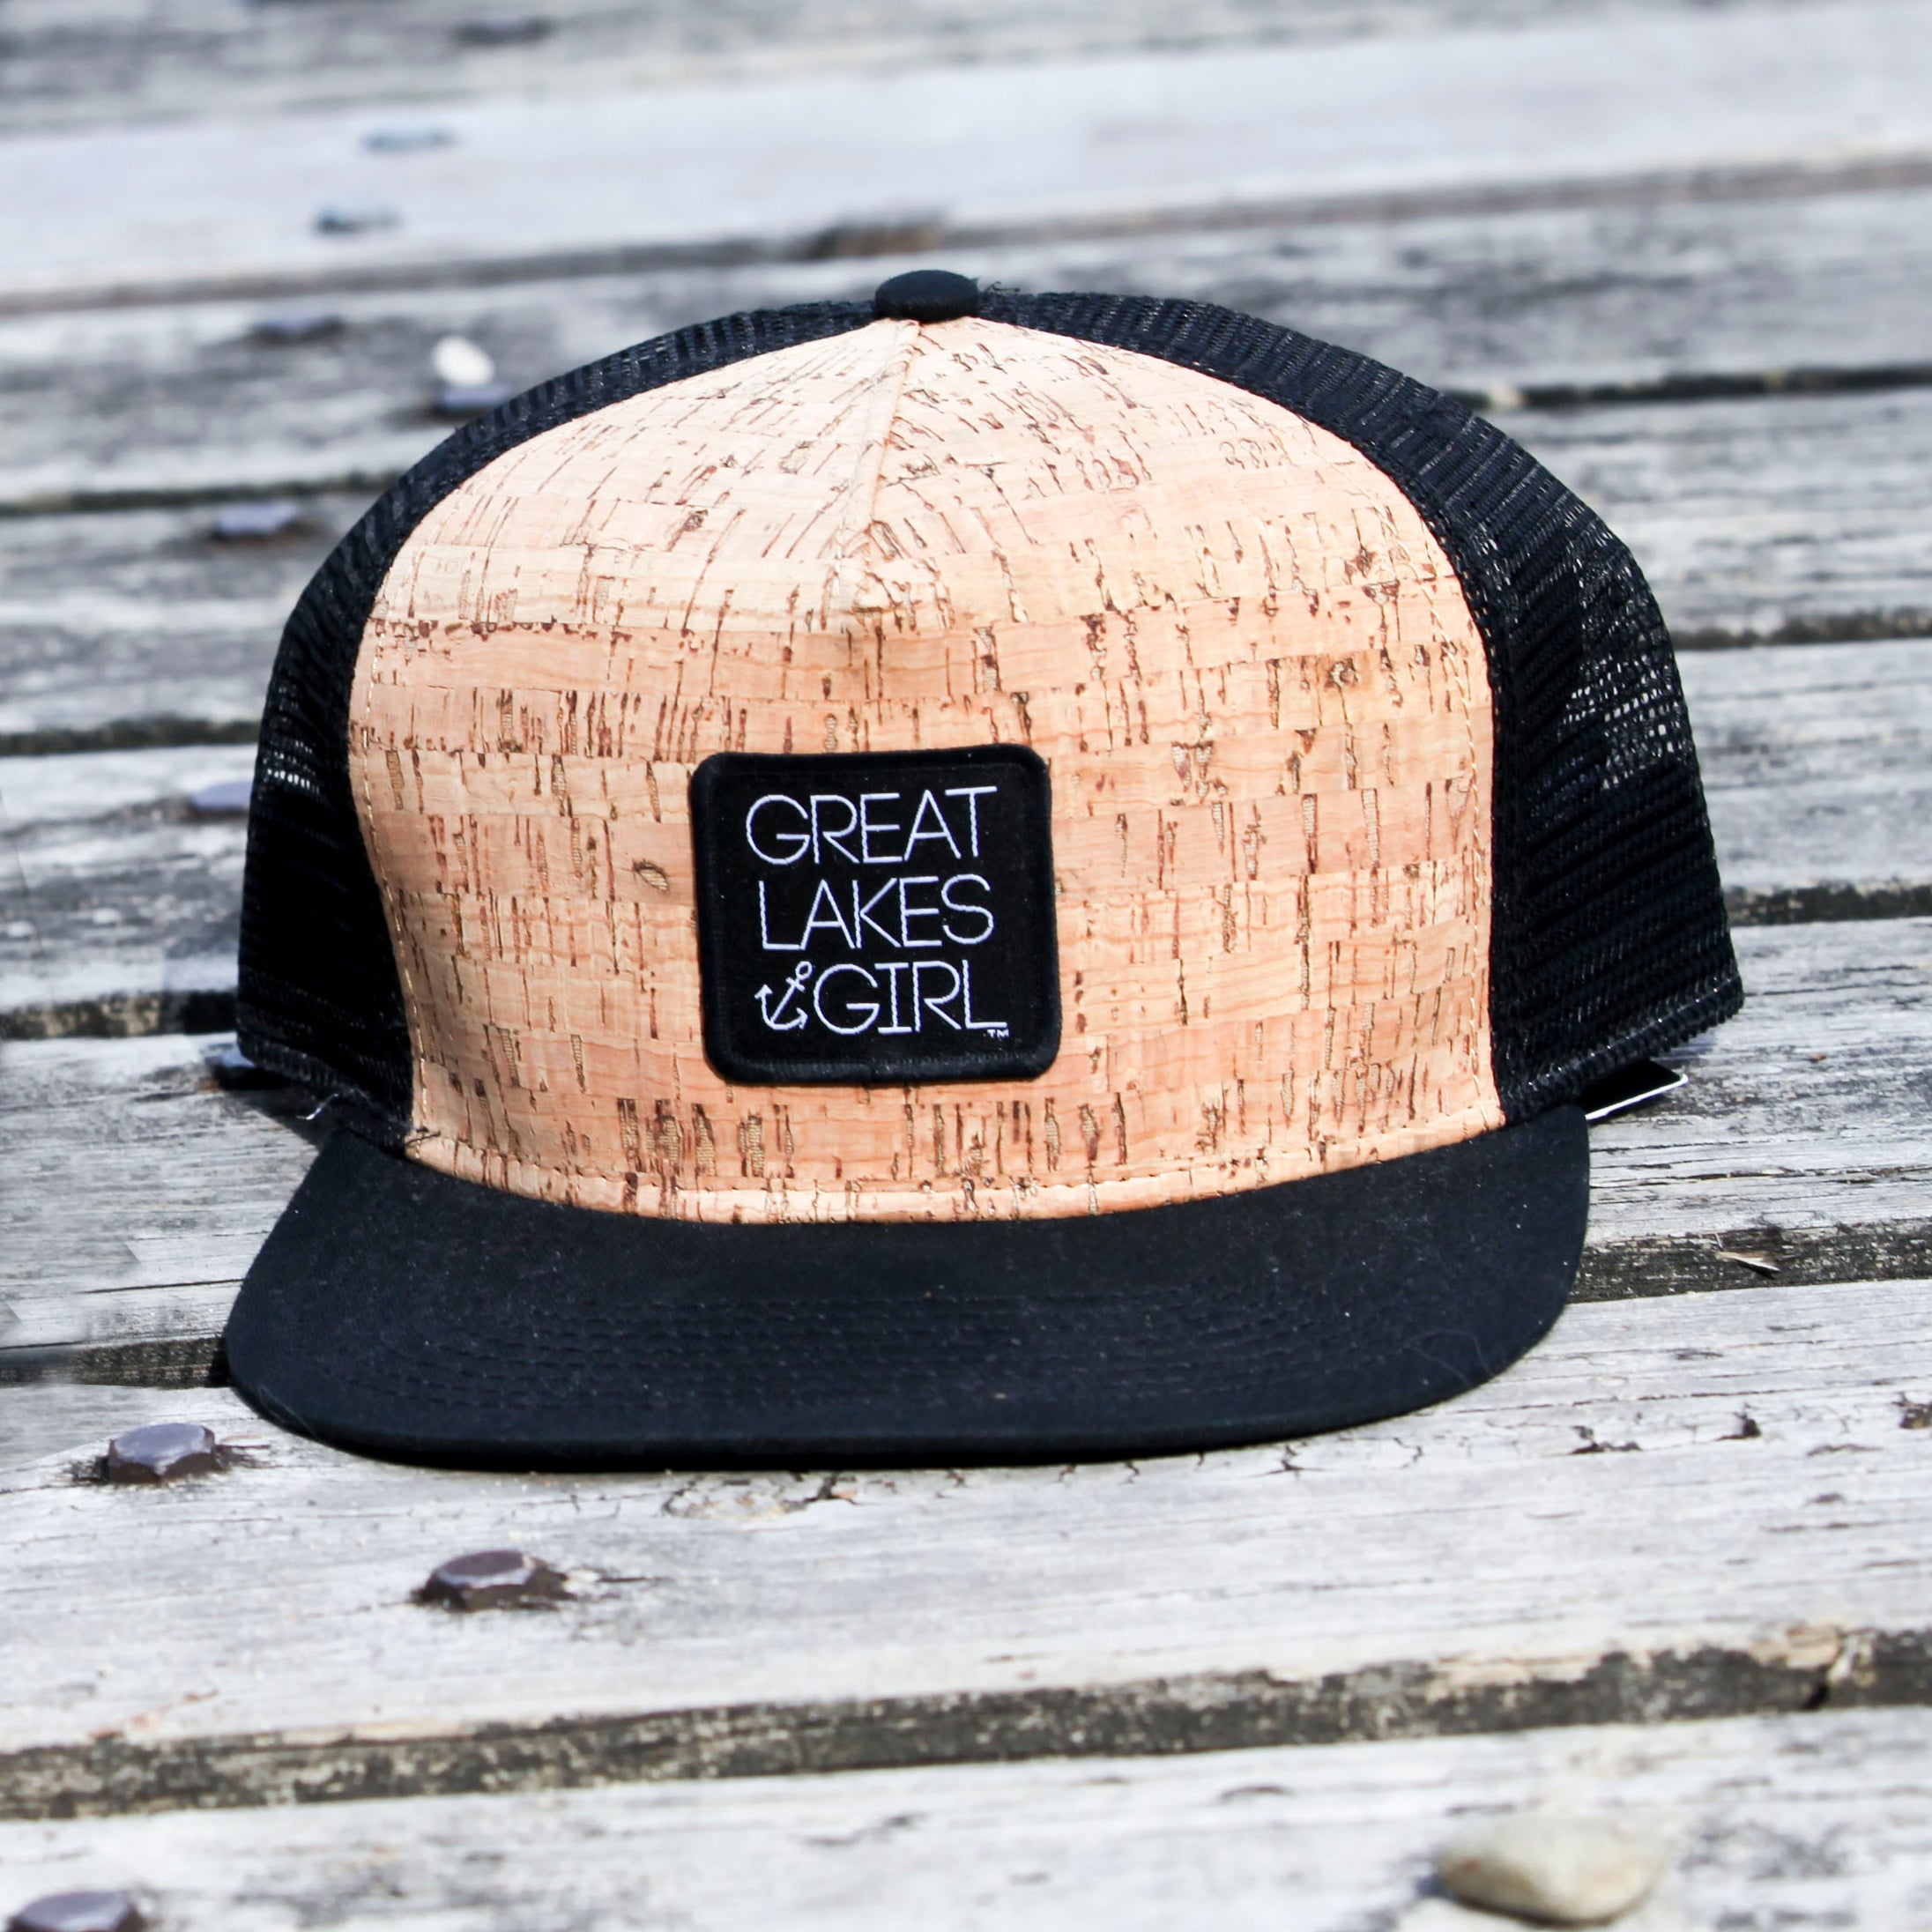 Great Lakes Girl Cork Flat Bill Hat-BUY ONE GET ONE FREE! USE CODE FREEHAT